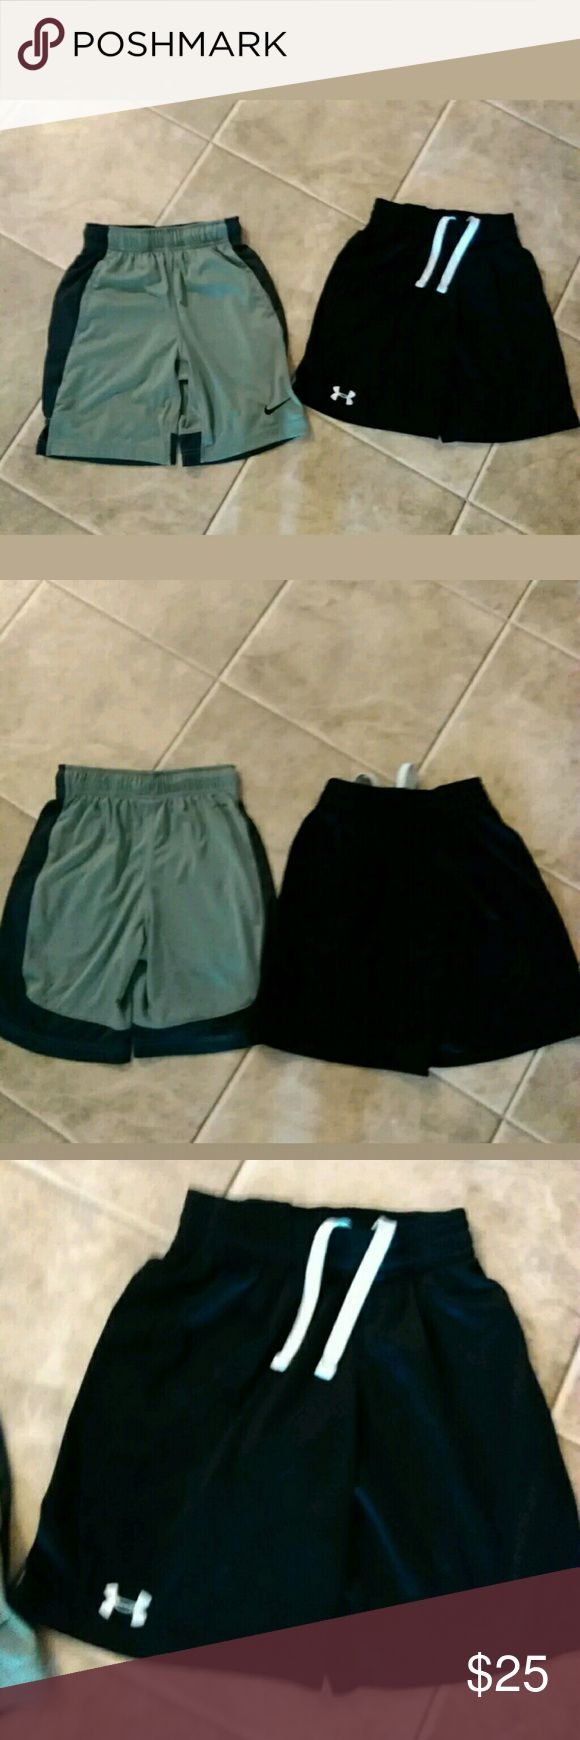 2 pairs if boys size small UA and Nike shorts Boy's nike shorts size small Boy's under armour shorts youth small lot of 2 in excellent condition from a smoke-free home under Armour and nike Bottoms Shorts